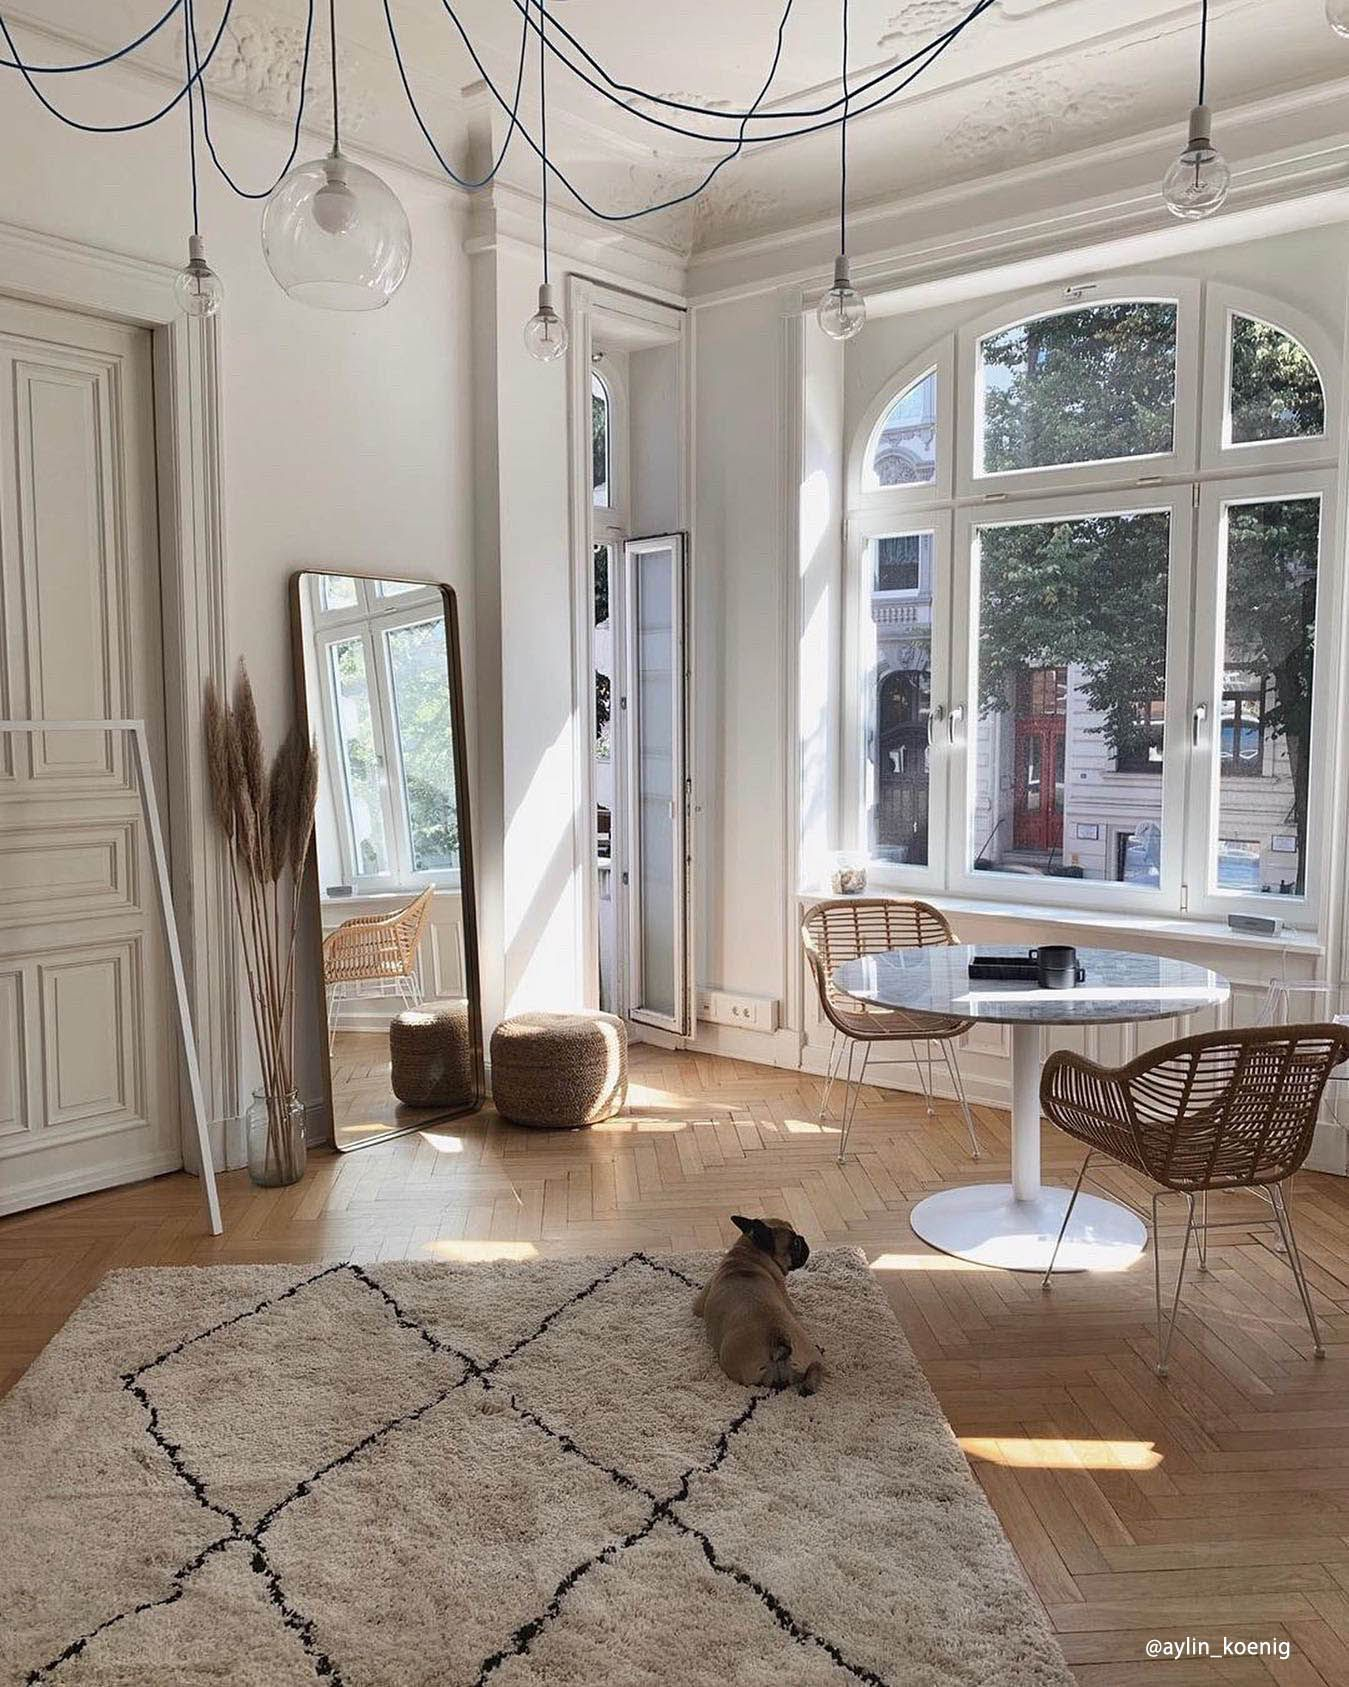 Best of 16: Le salon  Idees decoration maison, Deco appartement